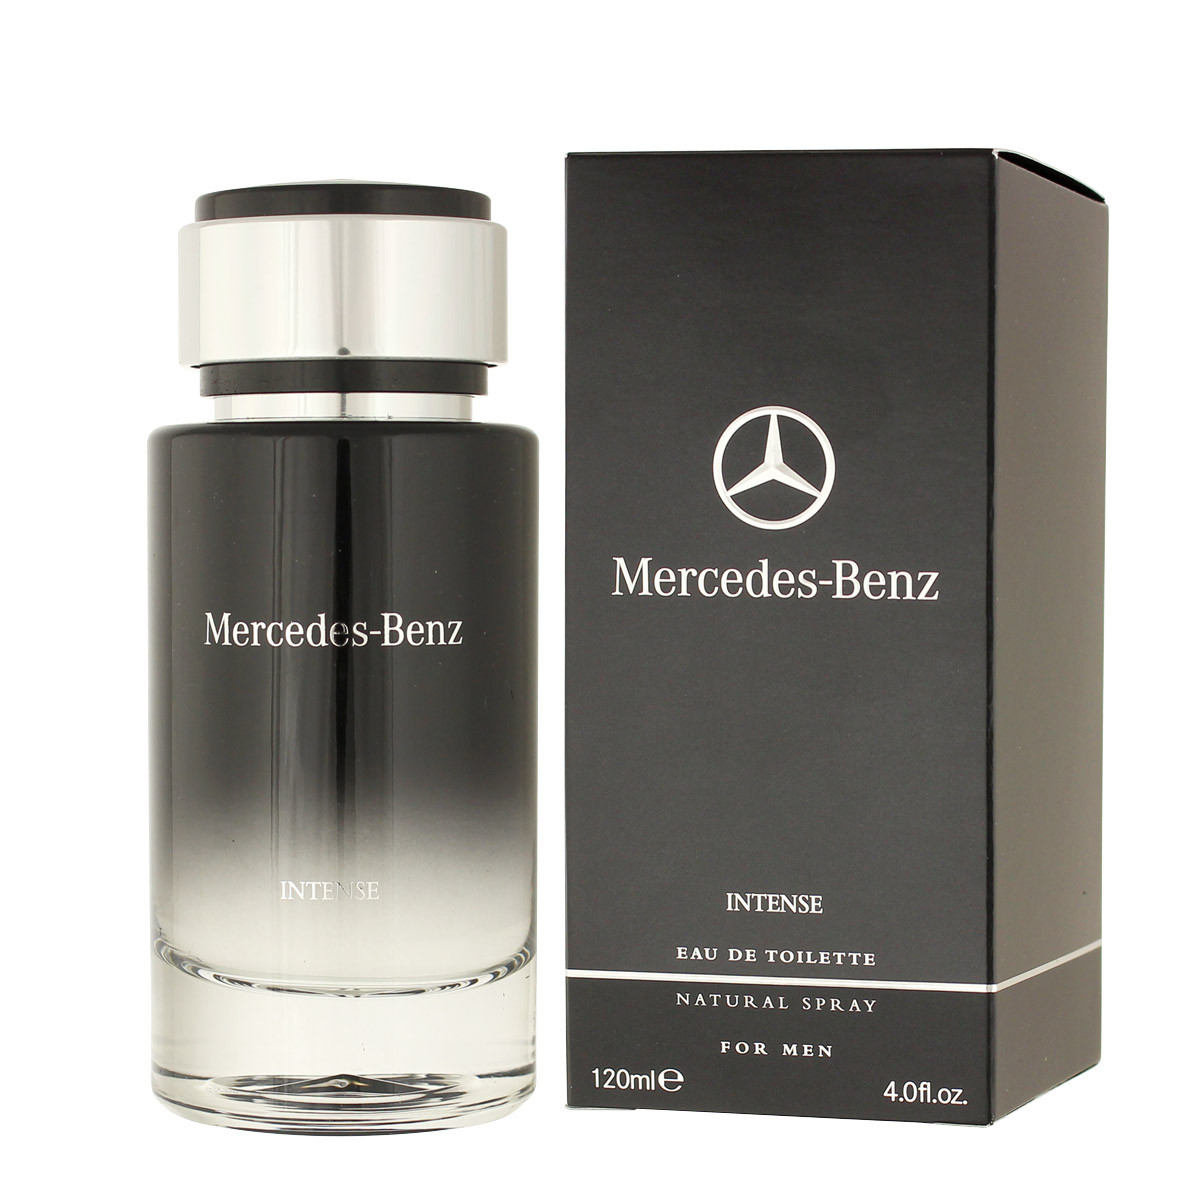 mercedes benz intense eau de toilette 120 ml man. Black Bedroom Furniture Sets. Home Design Ideas